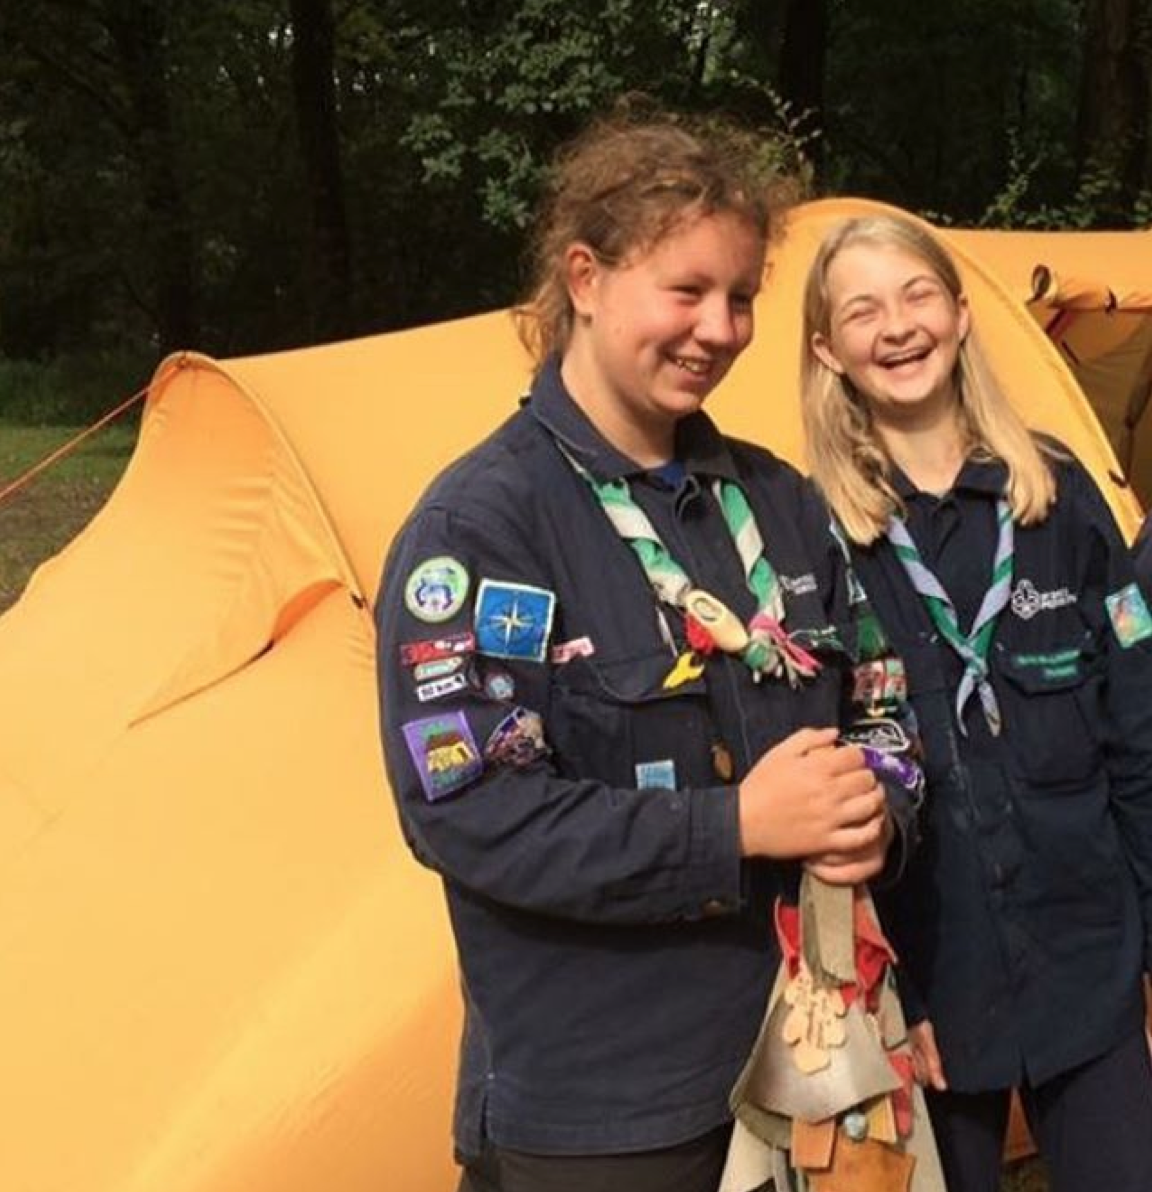 Lige kommet hjem fra spejderlejr i Holland og efterskole i morgen #korinthefterskole #korinth #holland #achterdeberg #nistelrode #scout #spejder #exited #laugh #fun #sun #summer #august - Foto: Mathildestyrbaek